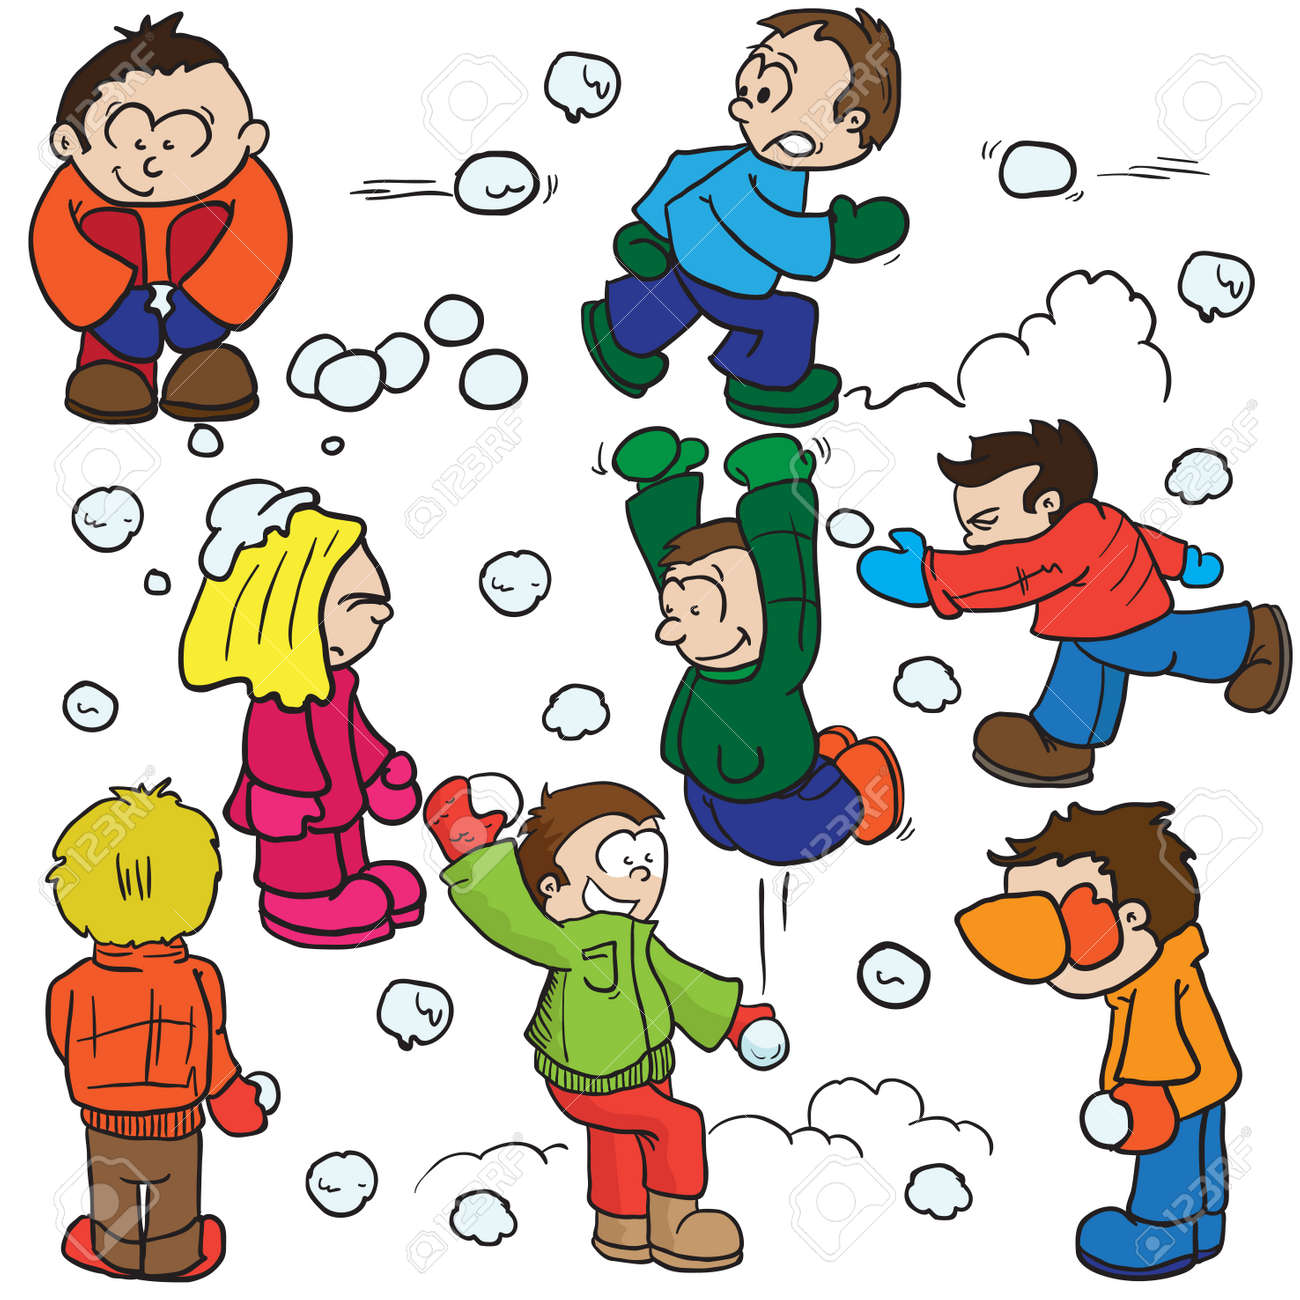 snowball fight cartoon illustration royalty free cliparts vectors rh 123rf com snowball fight clipart images snowball fight clipart images